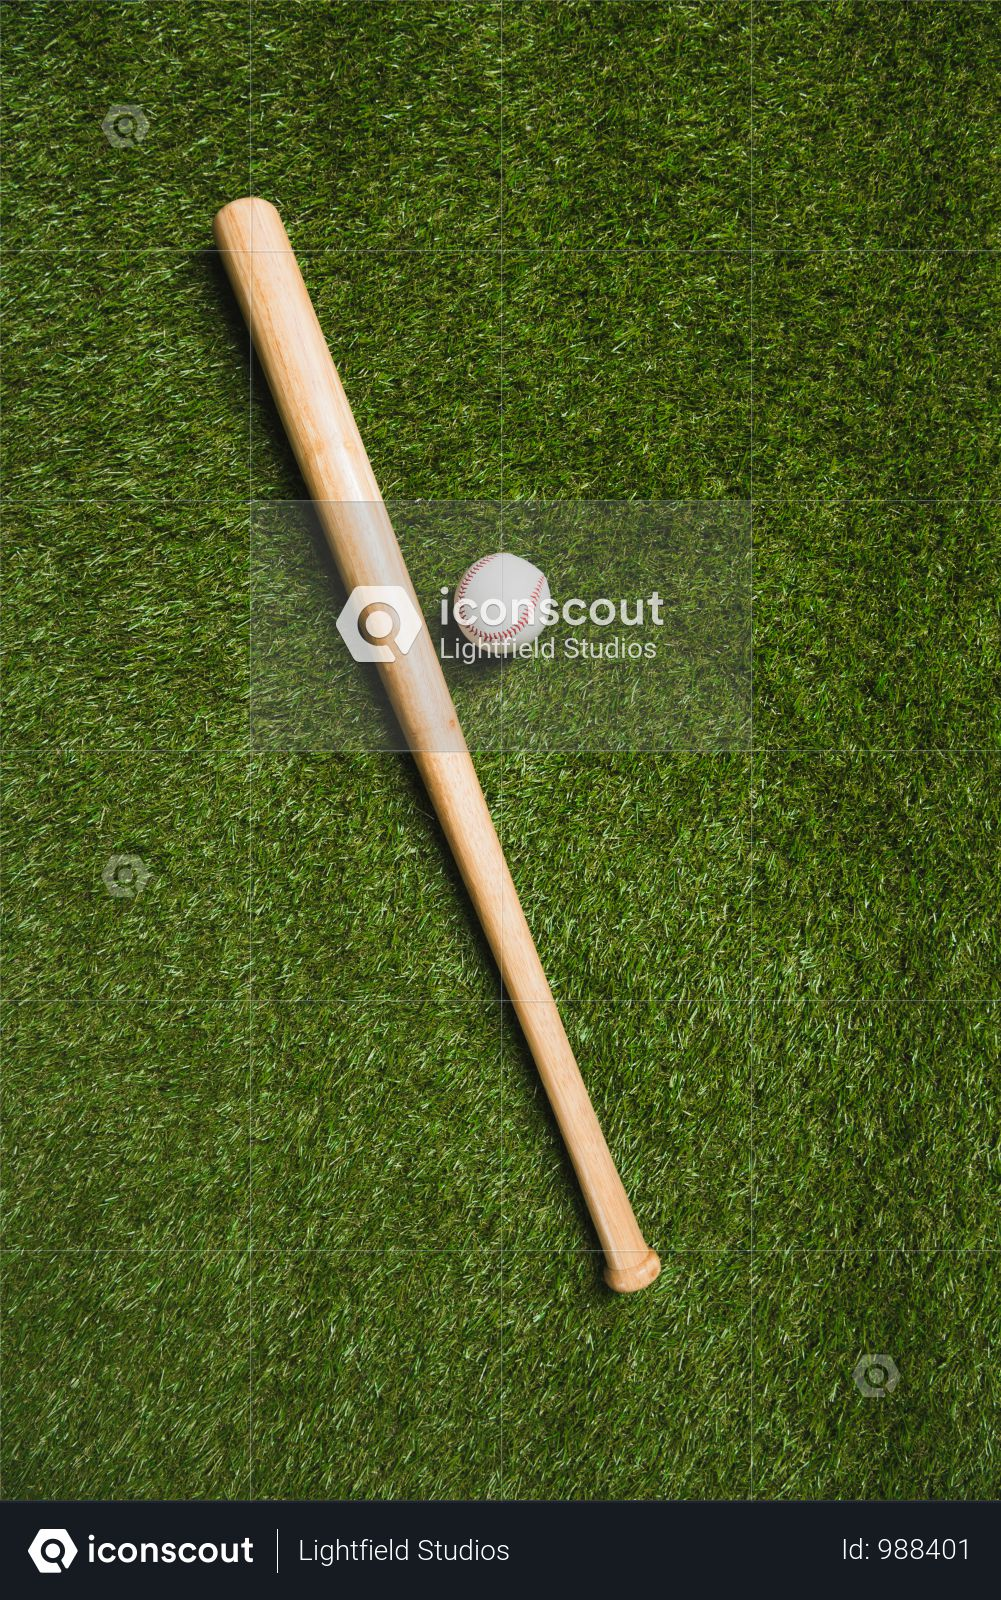 Top View Of Baseball Bat And Ball On Grass Field Photo